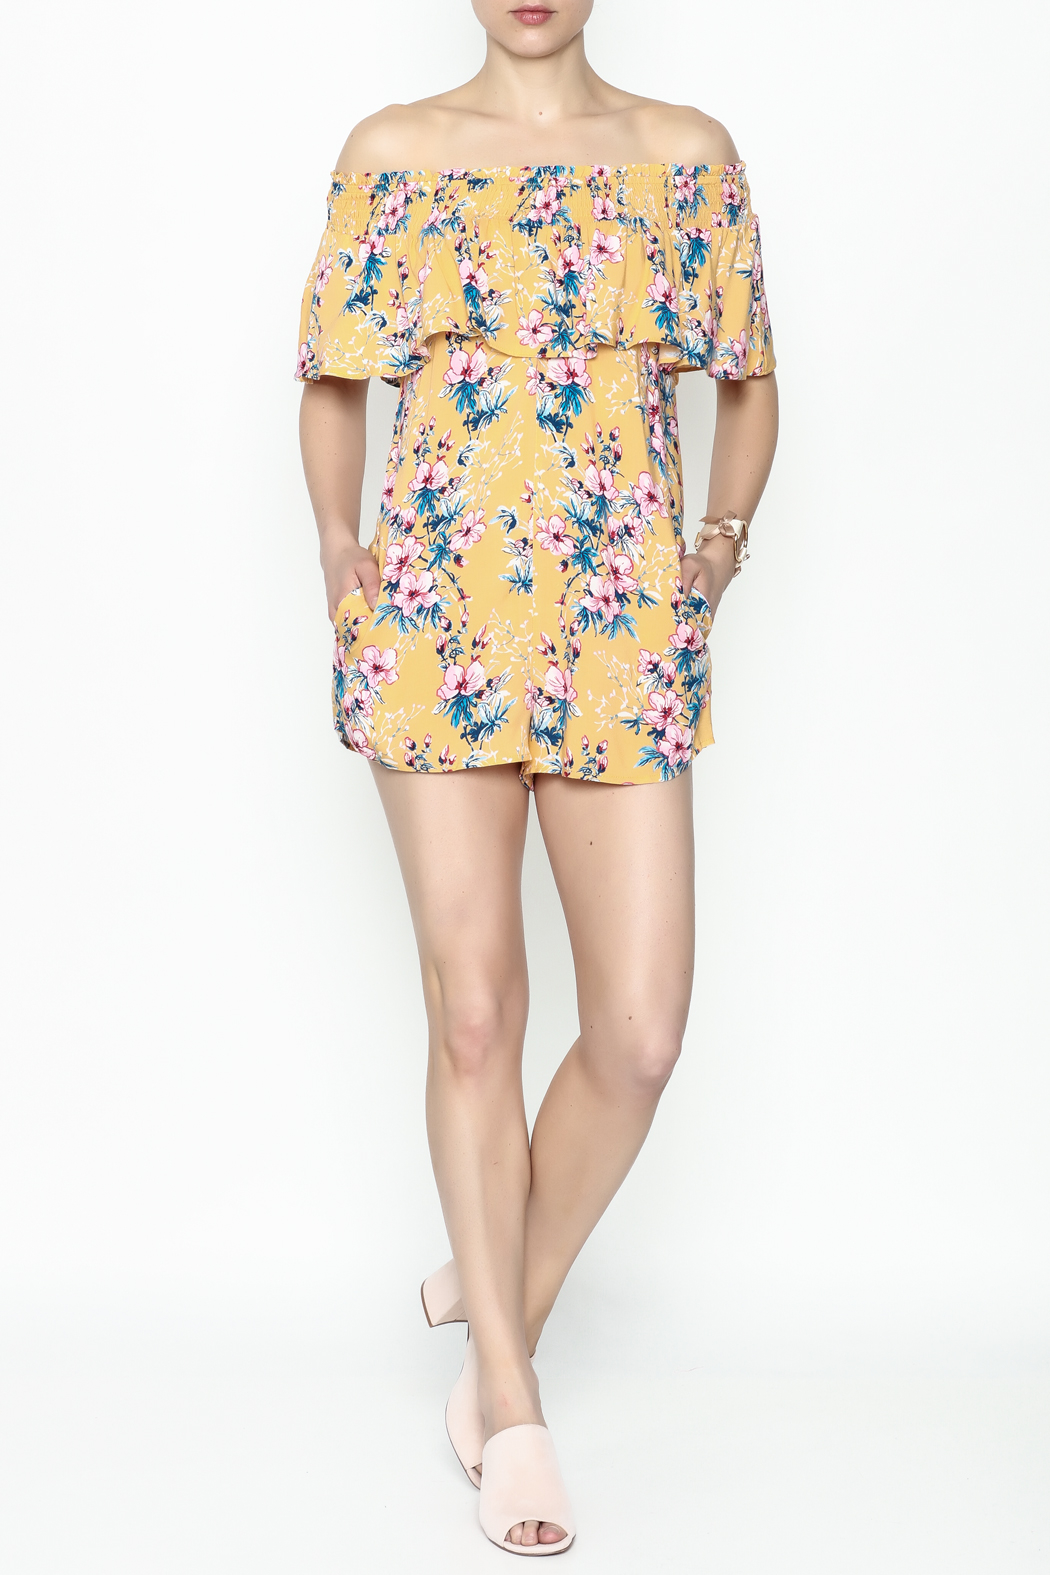 Cotton Candy Tropical Destiny Romper - Side Cropped Image